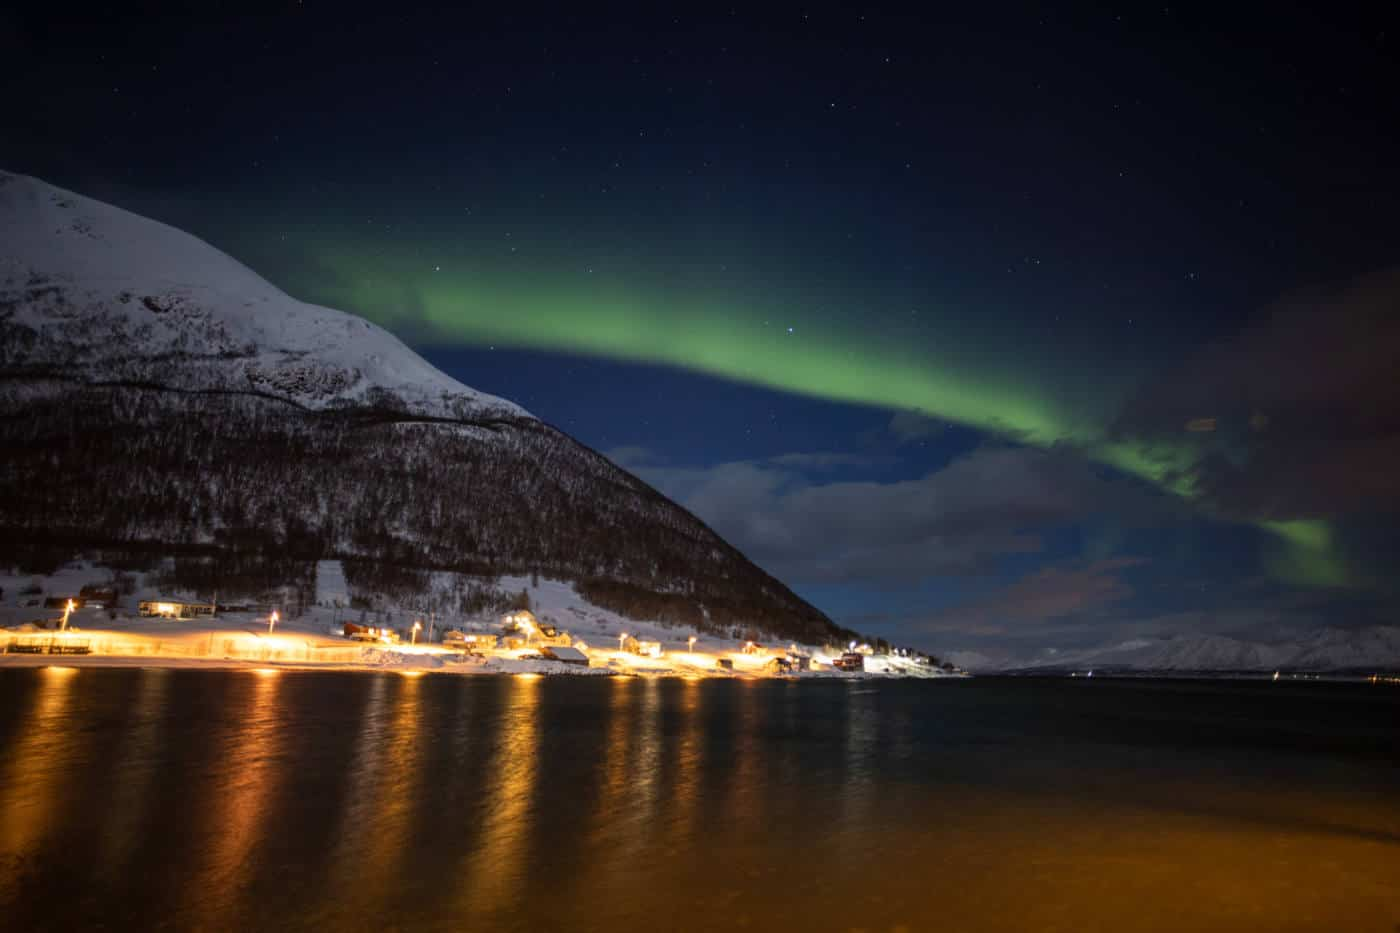 The Northern Lights in the Lofoten Islands